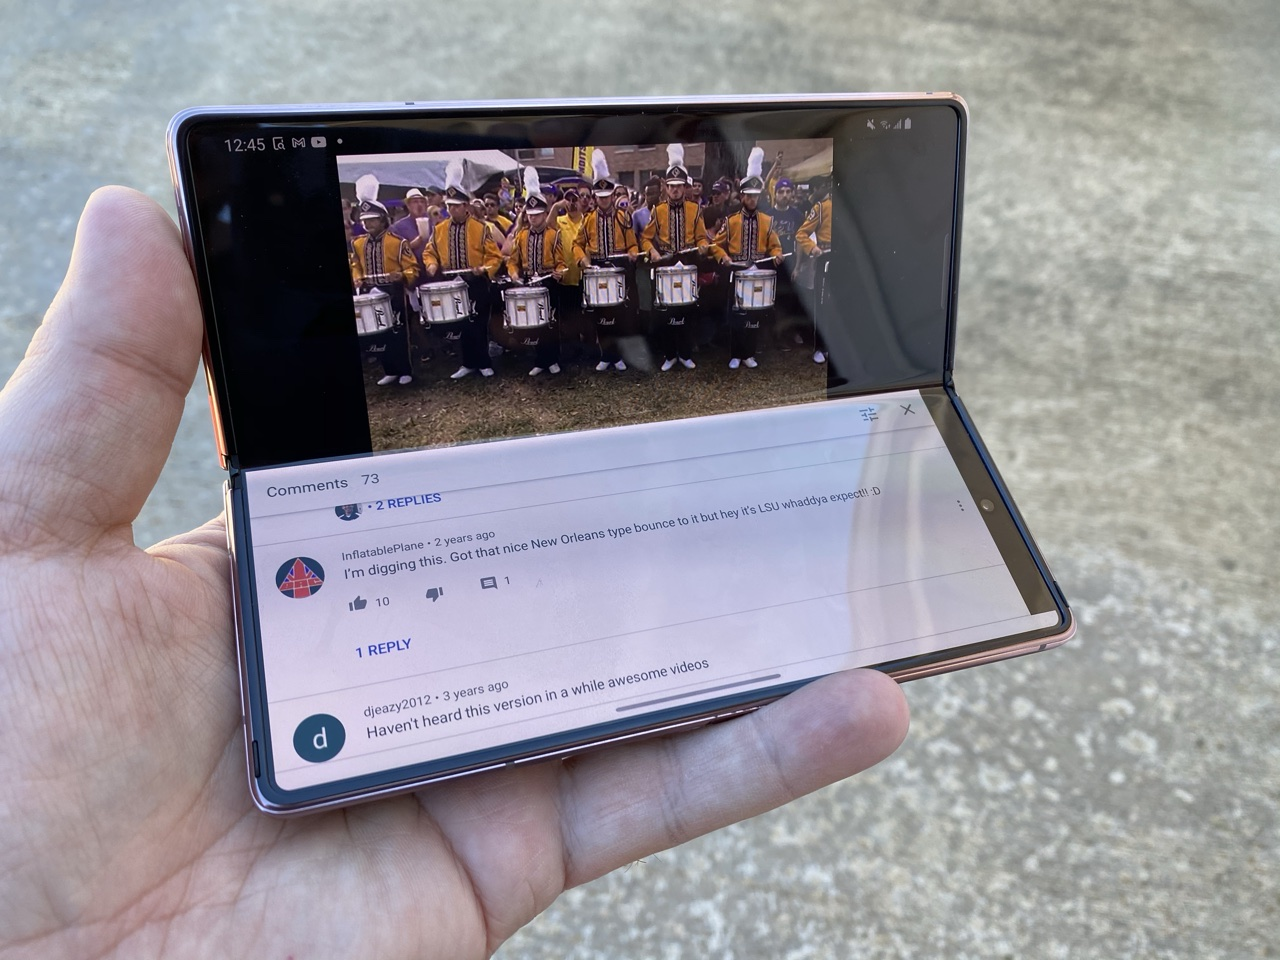 Samsung Galaxy Z Fold 2 Flex Mode